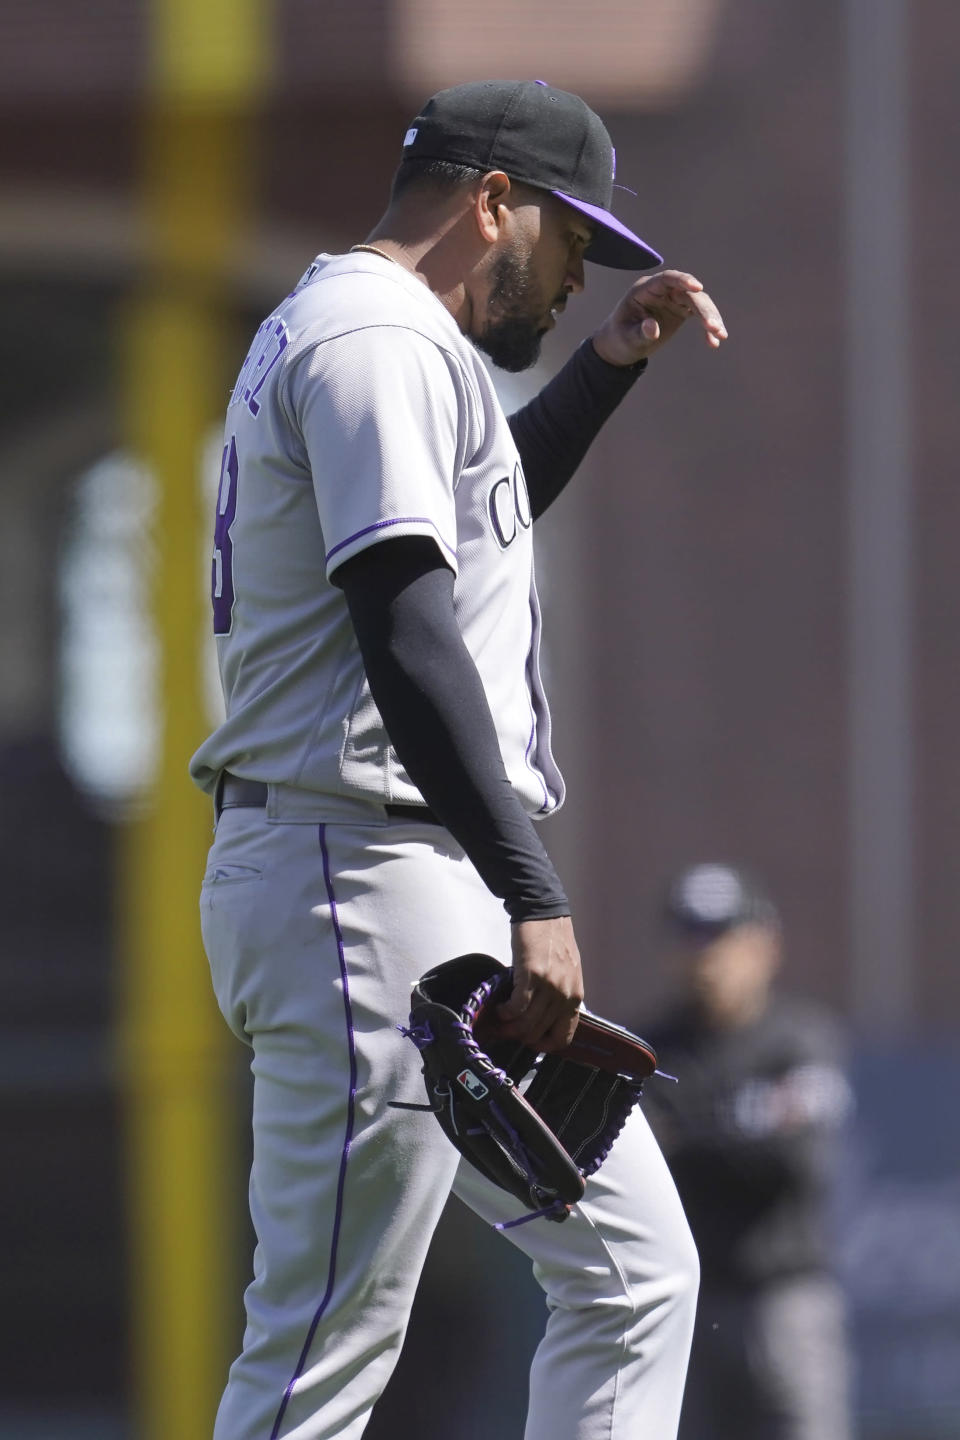 Colorado Rockies pitcher German Marquez walks toward the dugout after being relieved during the sixth inning of a baseball game against the San Francisco Giants in San Francisco, Sunday, April 11, 2021. (AP Photo/Jeff Chiu)